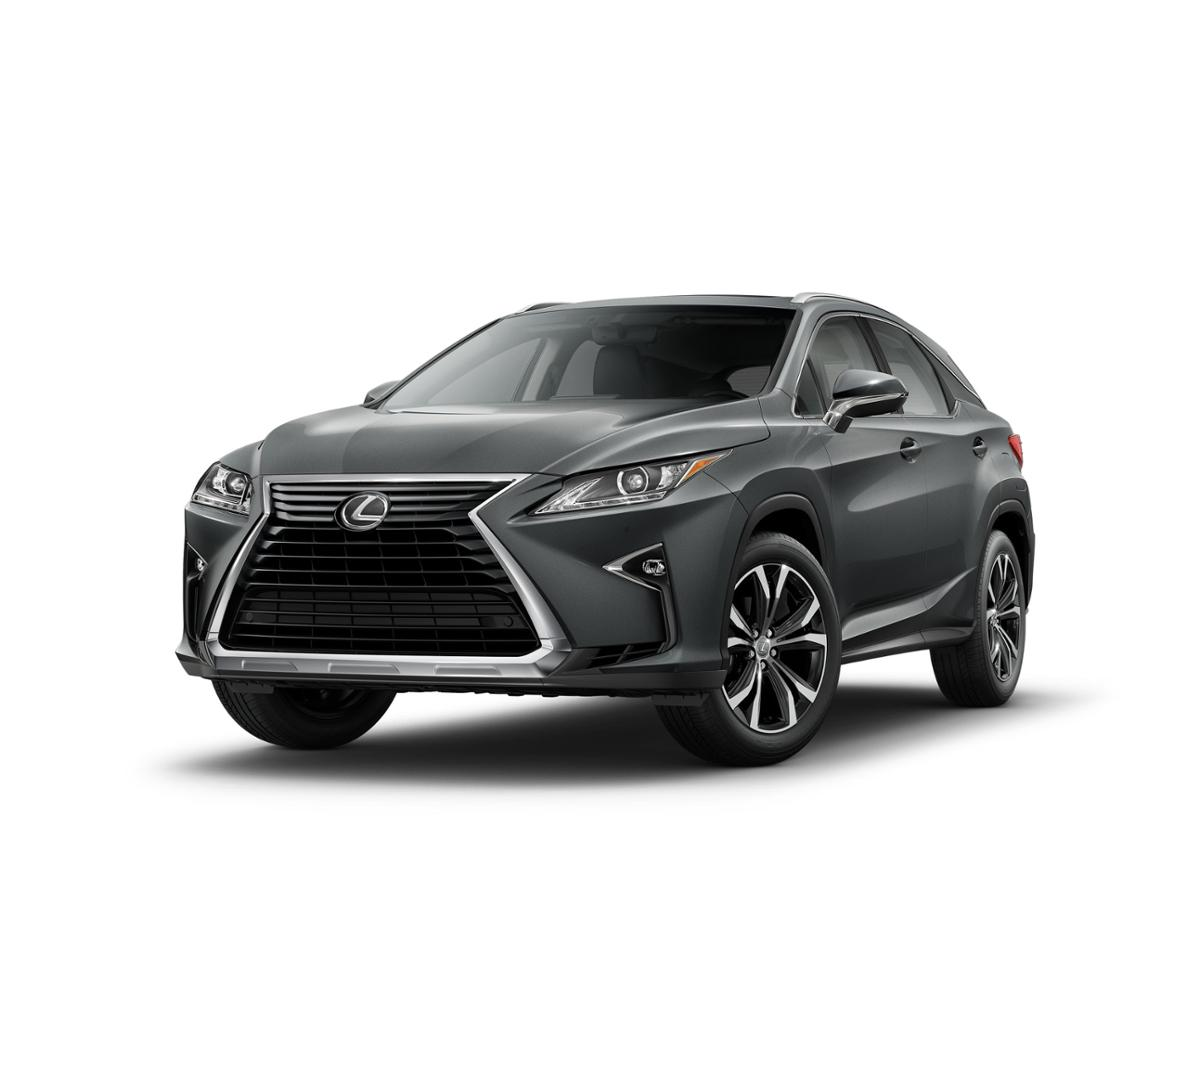 2017 Lexus RX 350 Vehicle Photo in Henderson, NV 89011